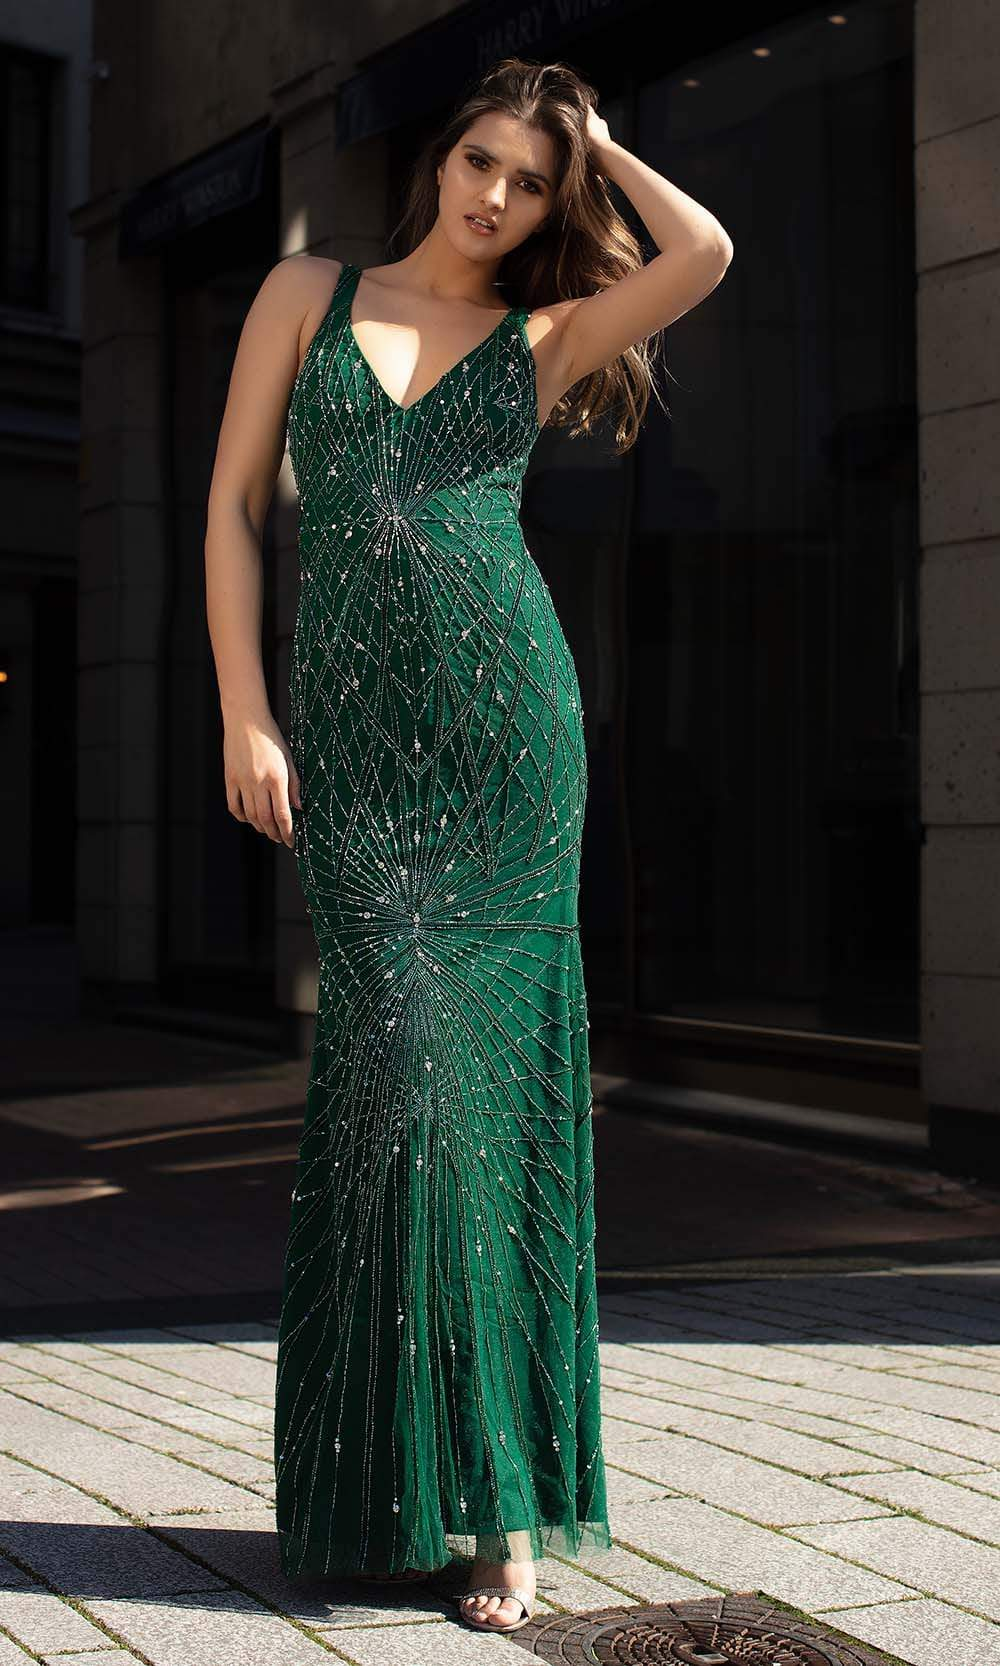 Chic and Holland - AN1416 Cutout Back Beaded Long Dress from Chic and Holland